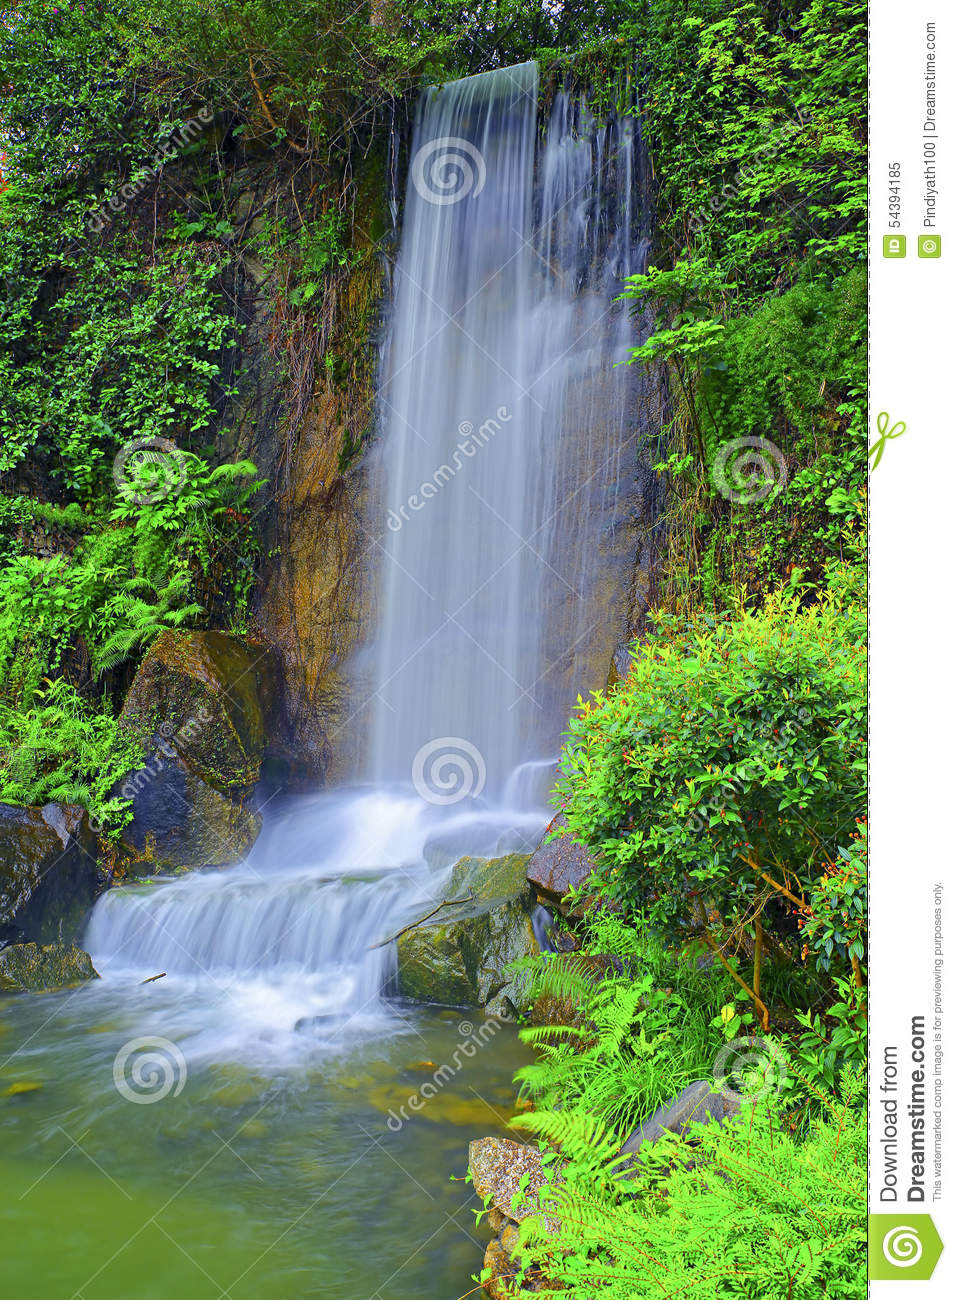 Waterfall in zen garden stock photo image 54394185 for Zen garden waterfall